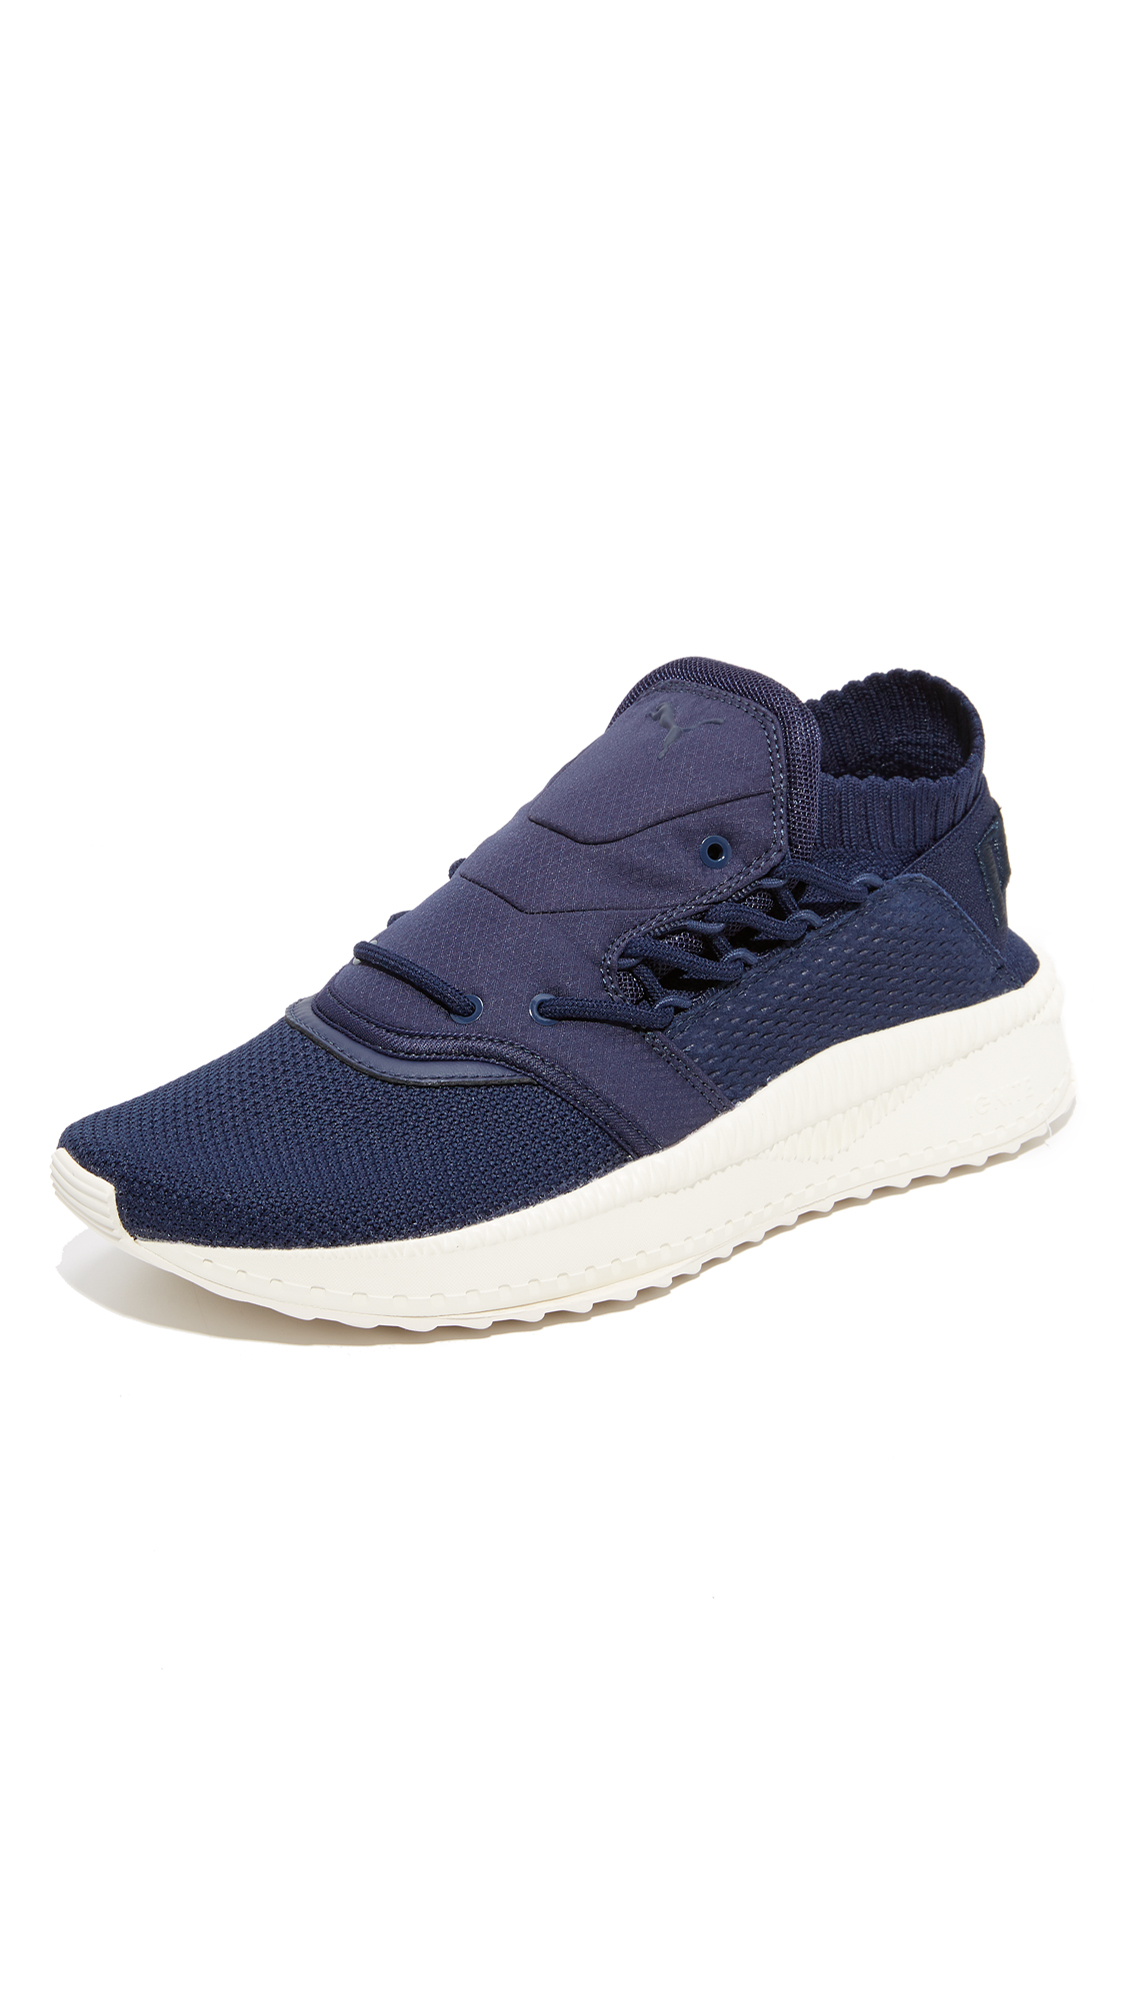 PUMA Select Tsungi Shinsei Sneakers